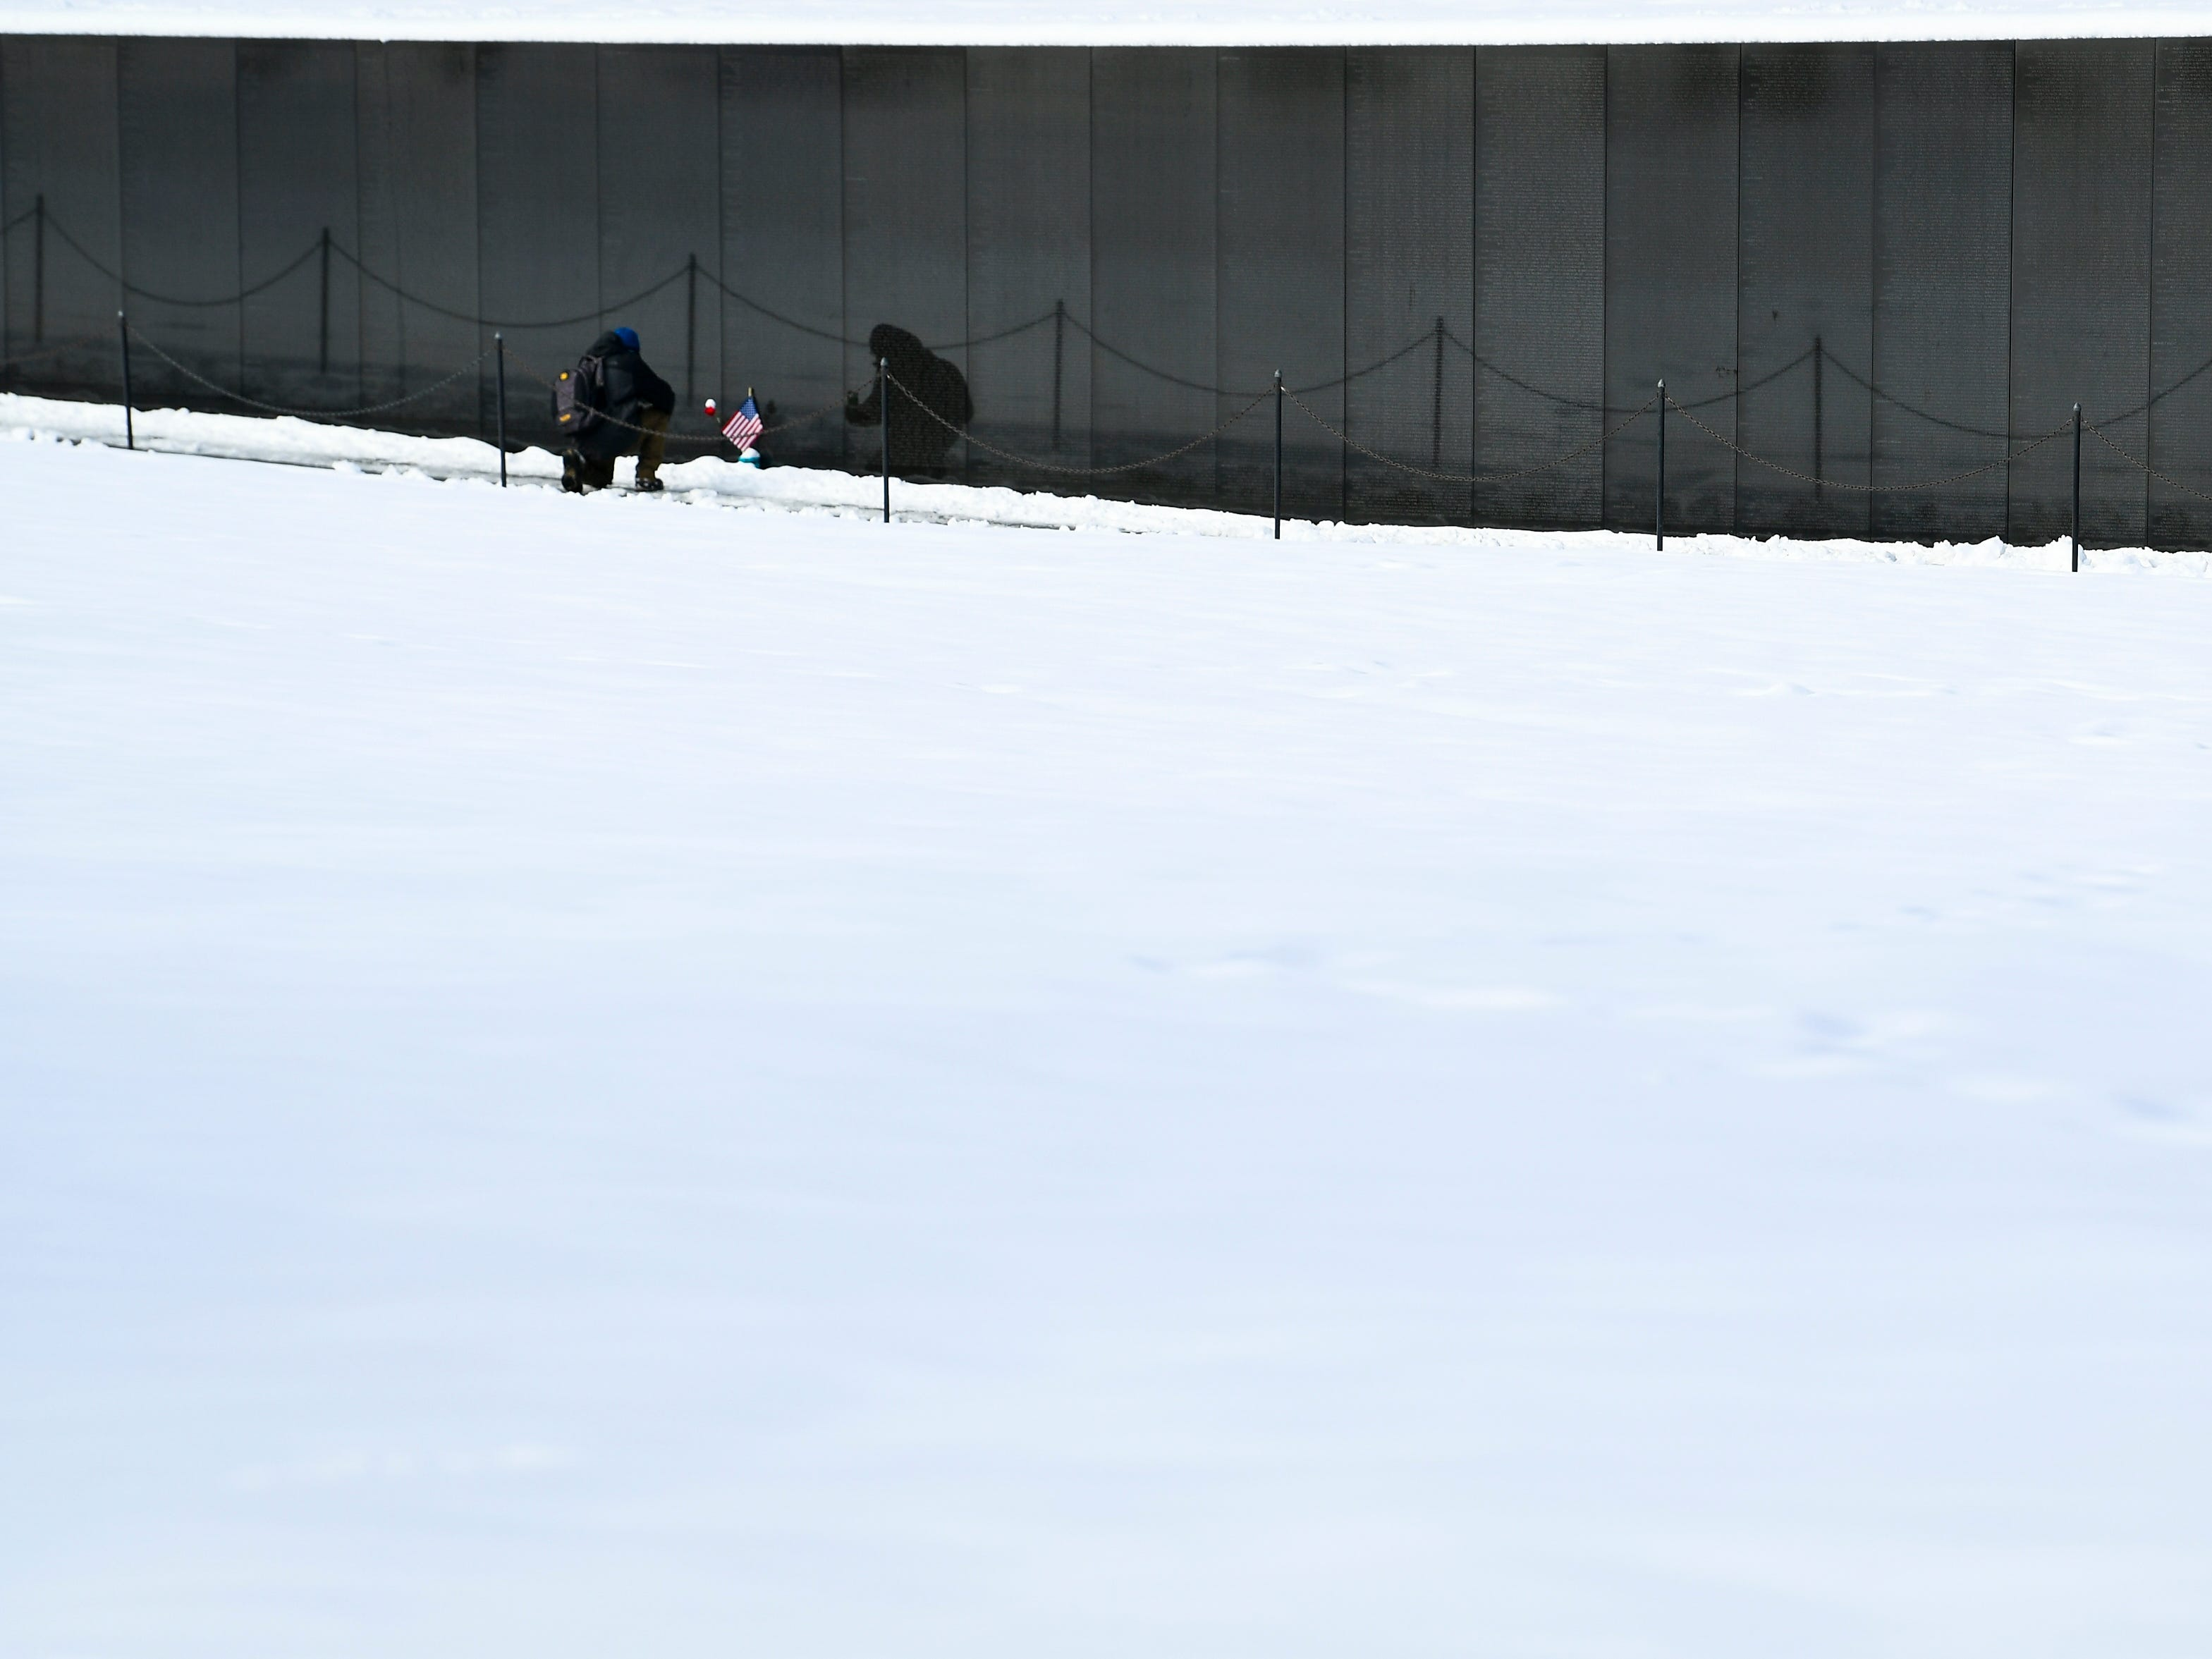 1/14/19 10:07:06 AM -- Washington, DC, U.S.A  -- Visitors walking through snow and ice at Vietnam Veterans Memorial.   --    Photo by Jack Gruber, USA TODAY staff ORG XMIT:  JG 137762 Winter storm cle 1/14 (Via OlyDrop)